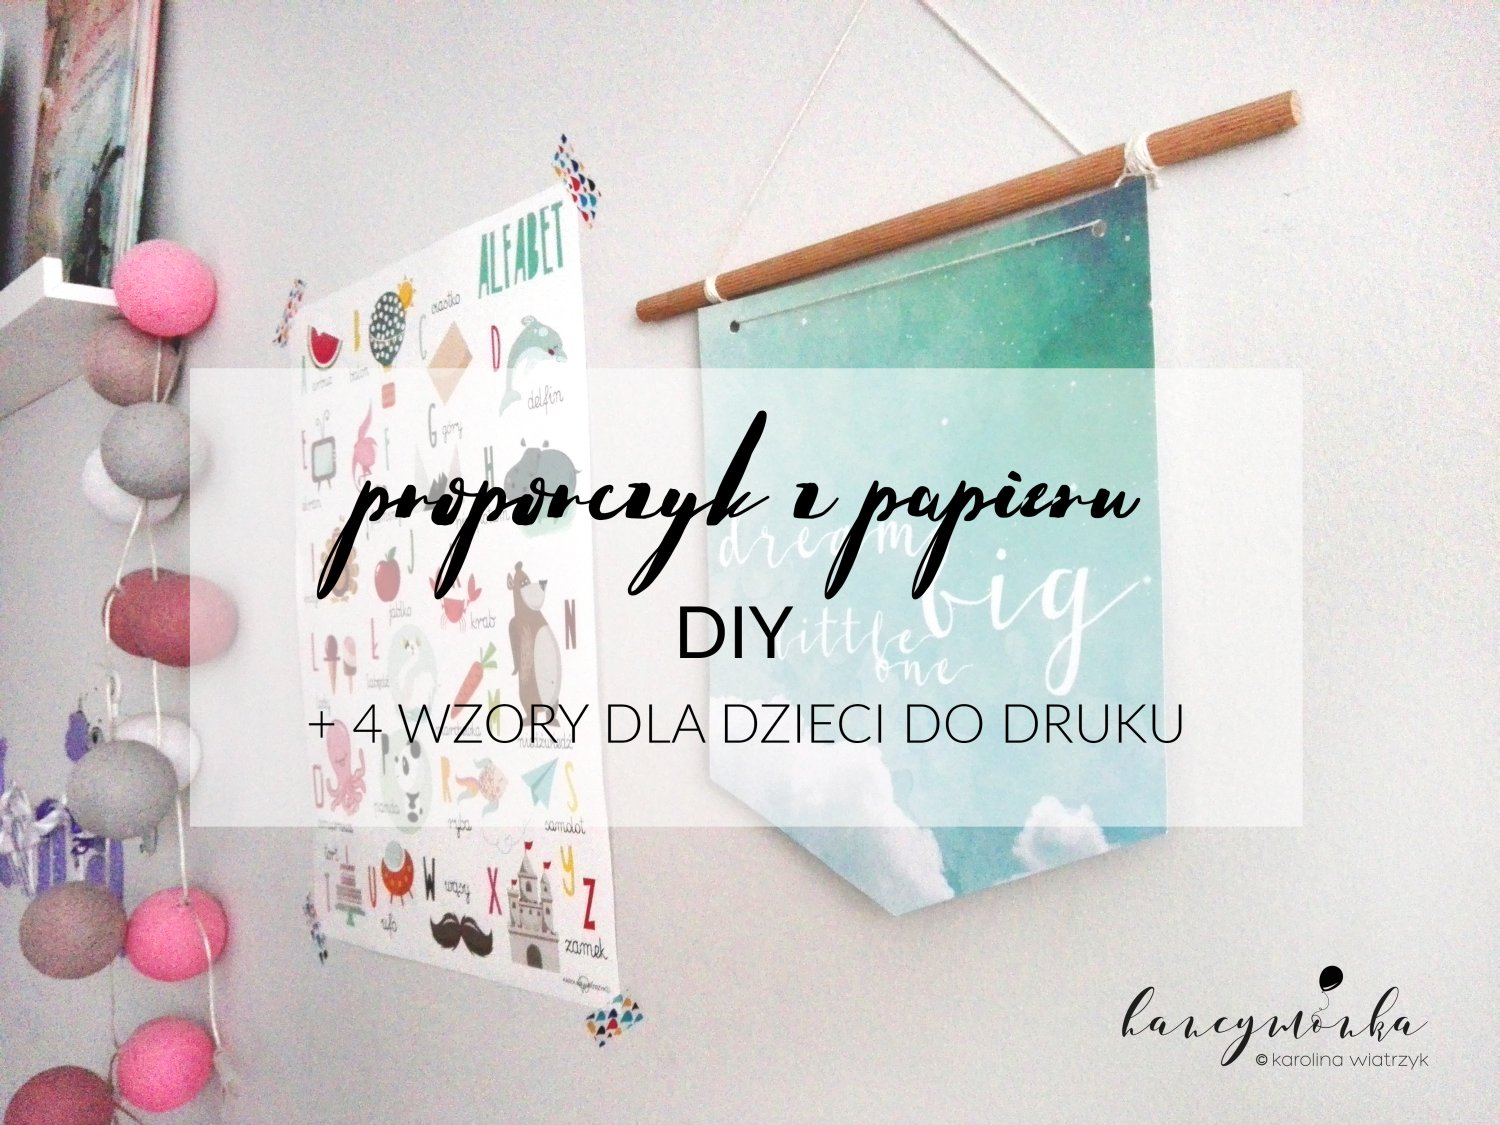 diy, proporczyk, paper flag, baby room, kids room, decor, decoration, pokój dziecięcy, dla dzieci, for kids, design for kids, zrób to sam, zrób to sama mamo, grafiki, plakaty, dream big, cloud, young and wild, princess